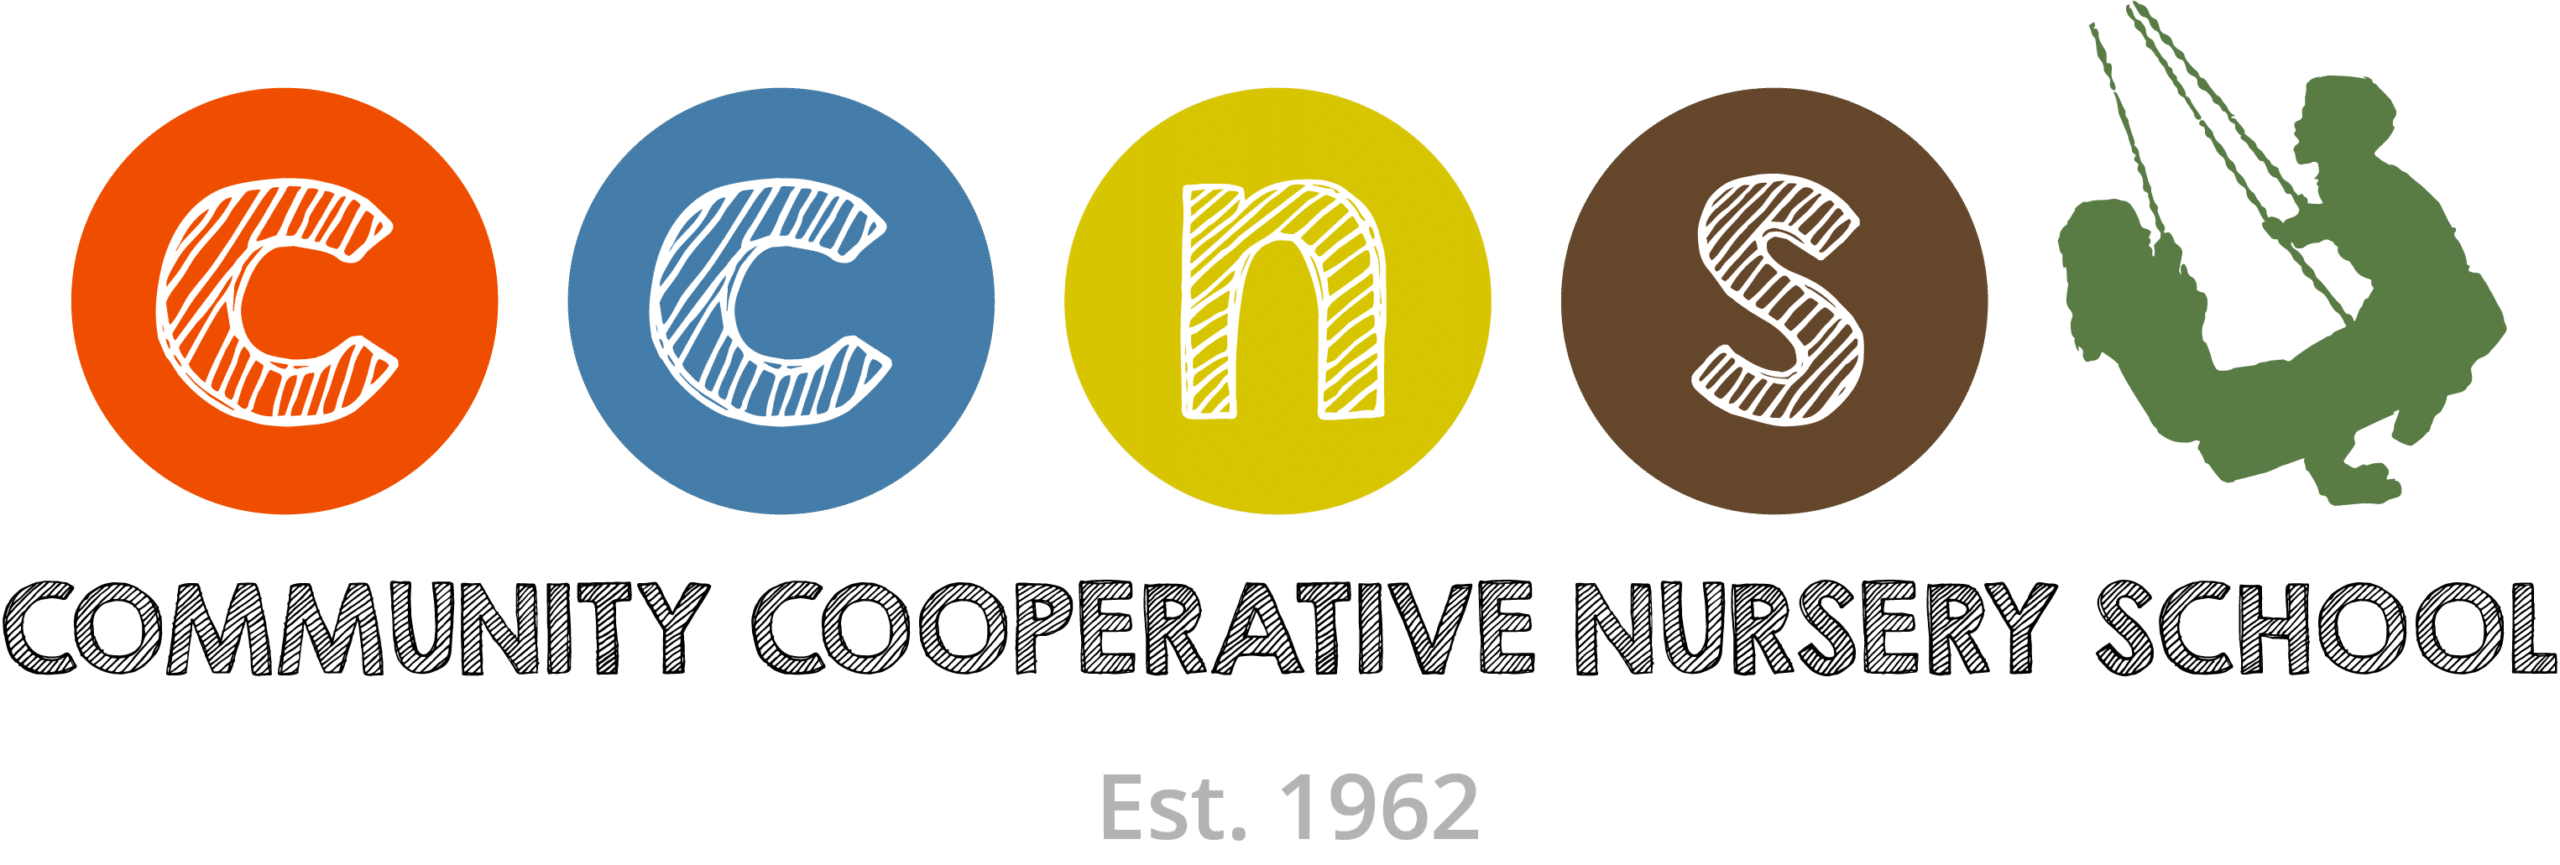 Community Cooperative Nursery School